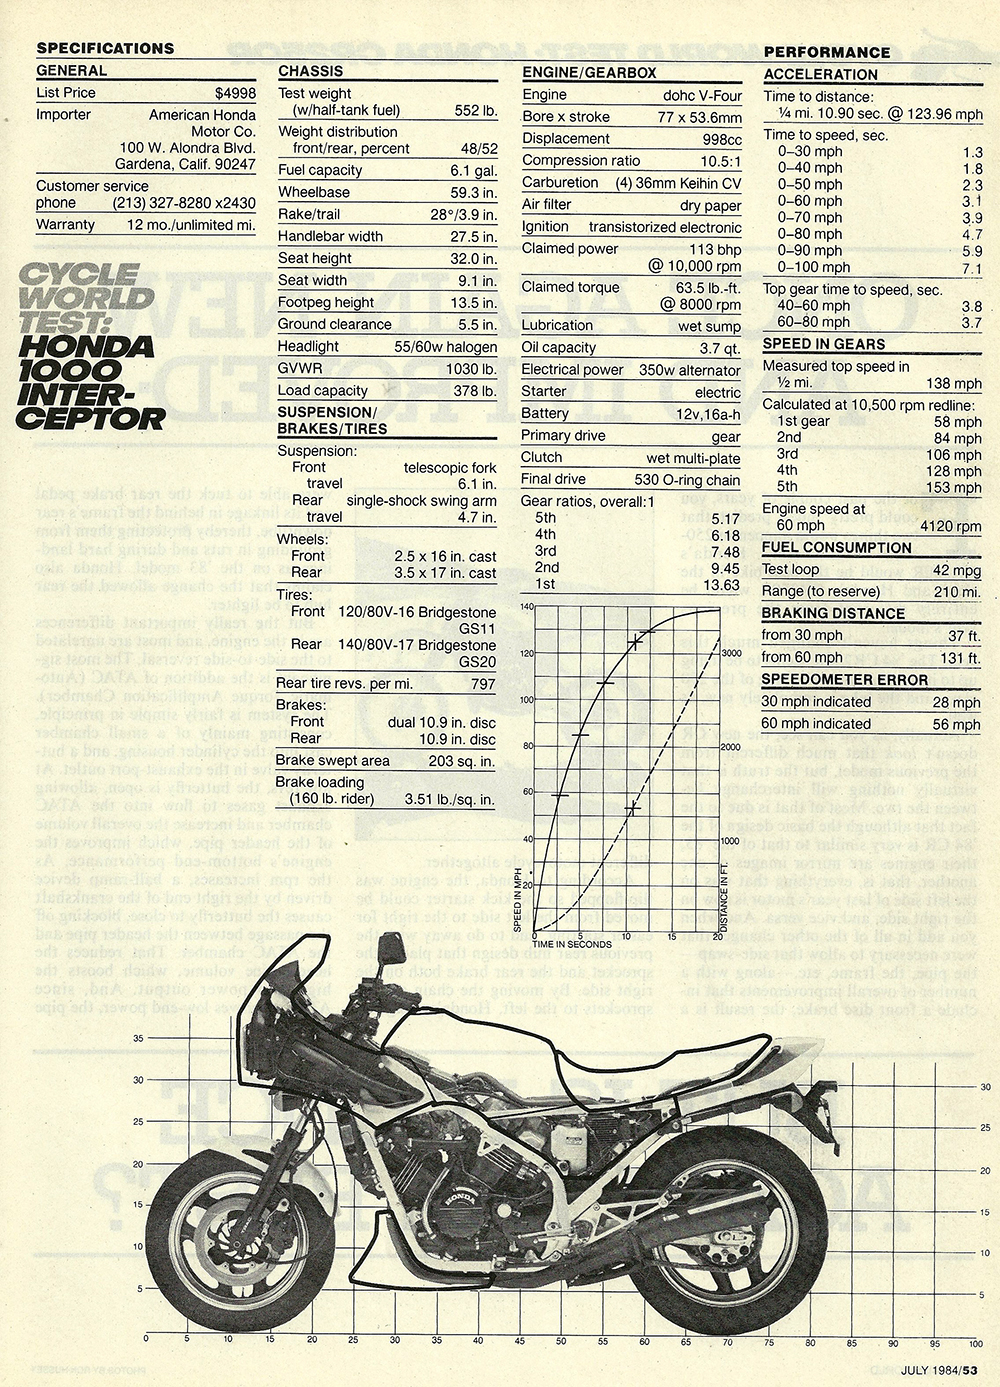 1984 Honda 1000 Interceptor 06.jpg